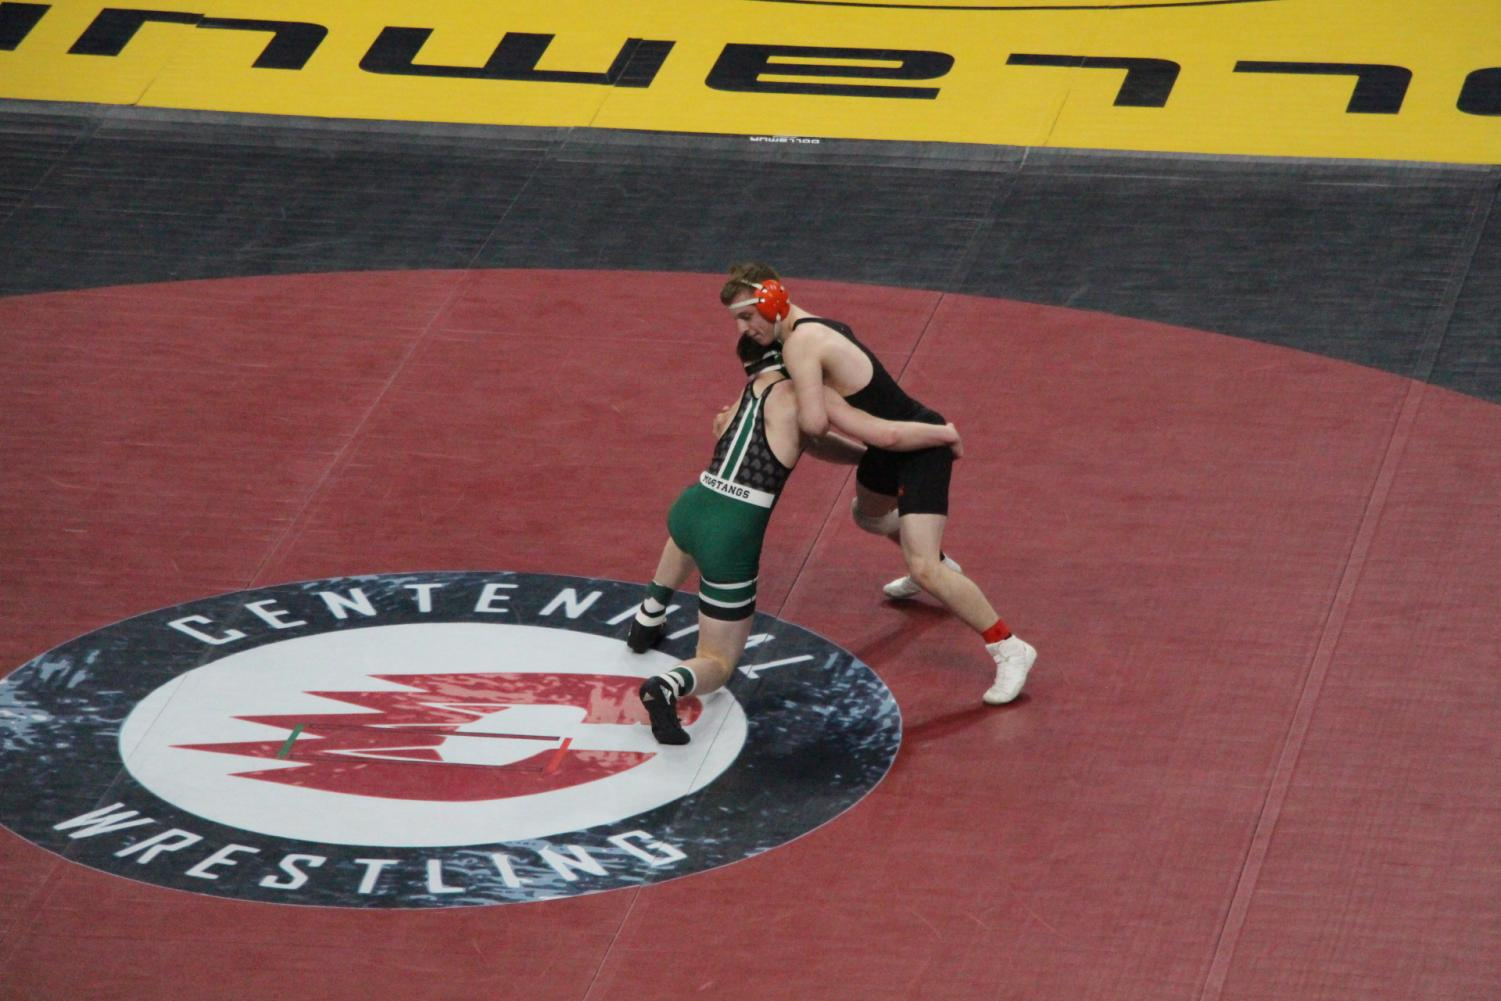 """Early this month was the Minnesota State wrestling tournament, held at the Excel Energy Center. This year two South wrestlers, brothers Brian and Daniel Avre, both qualified. Wrestling is a family tradition for them, and they have both been wrestling since around five. """"It's been a lifelong run for both of them. They've both been wrestling their whole lives and they just really put in the time,"""" said their coach Joe Morgan."""